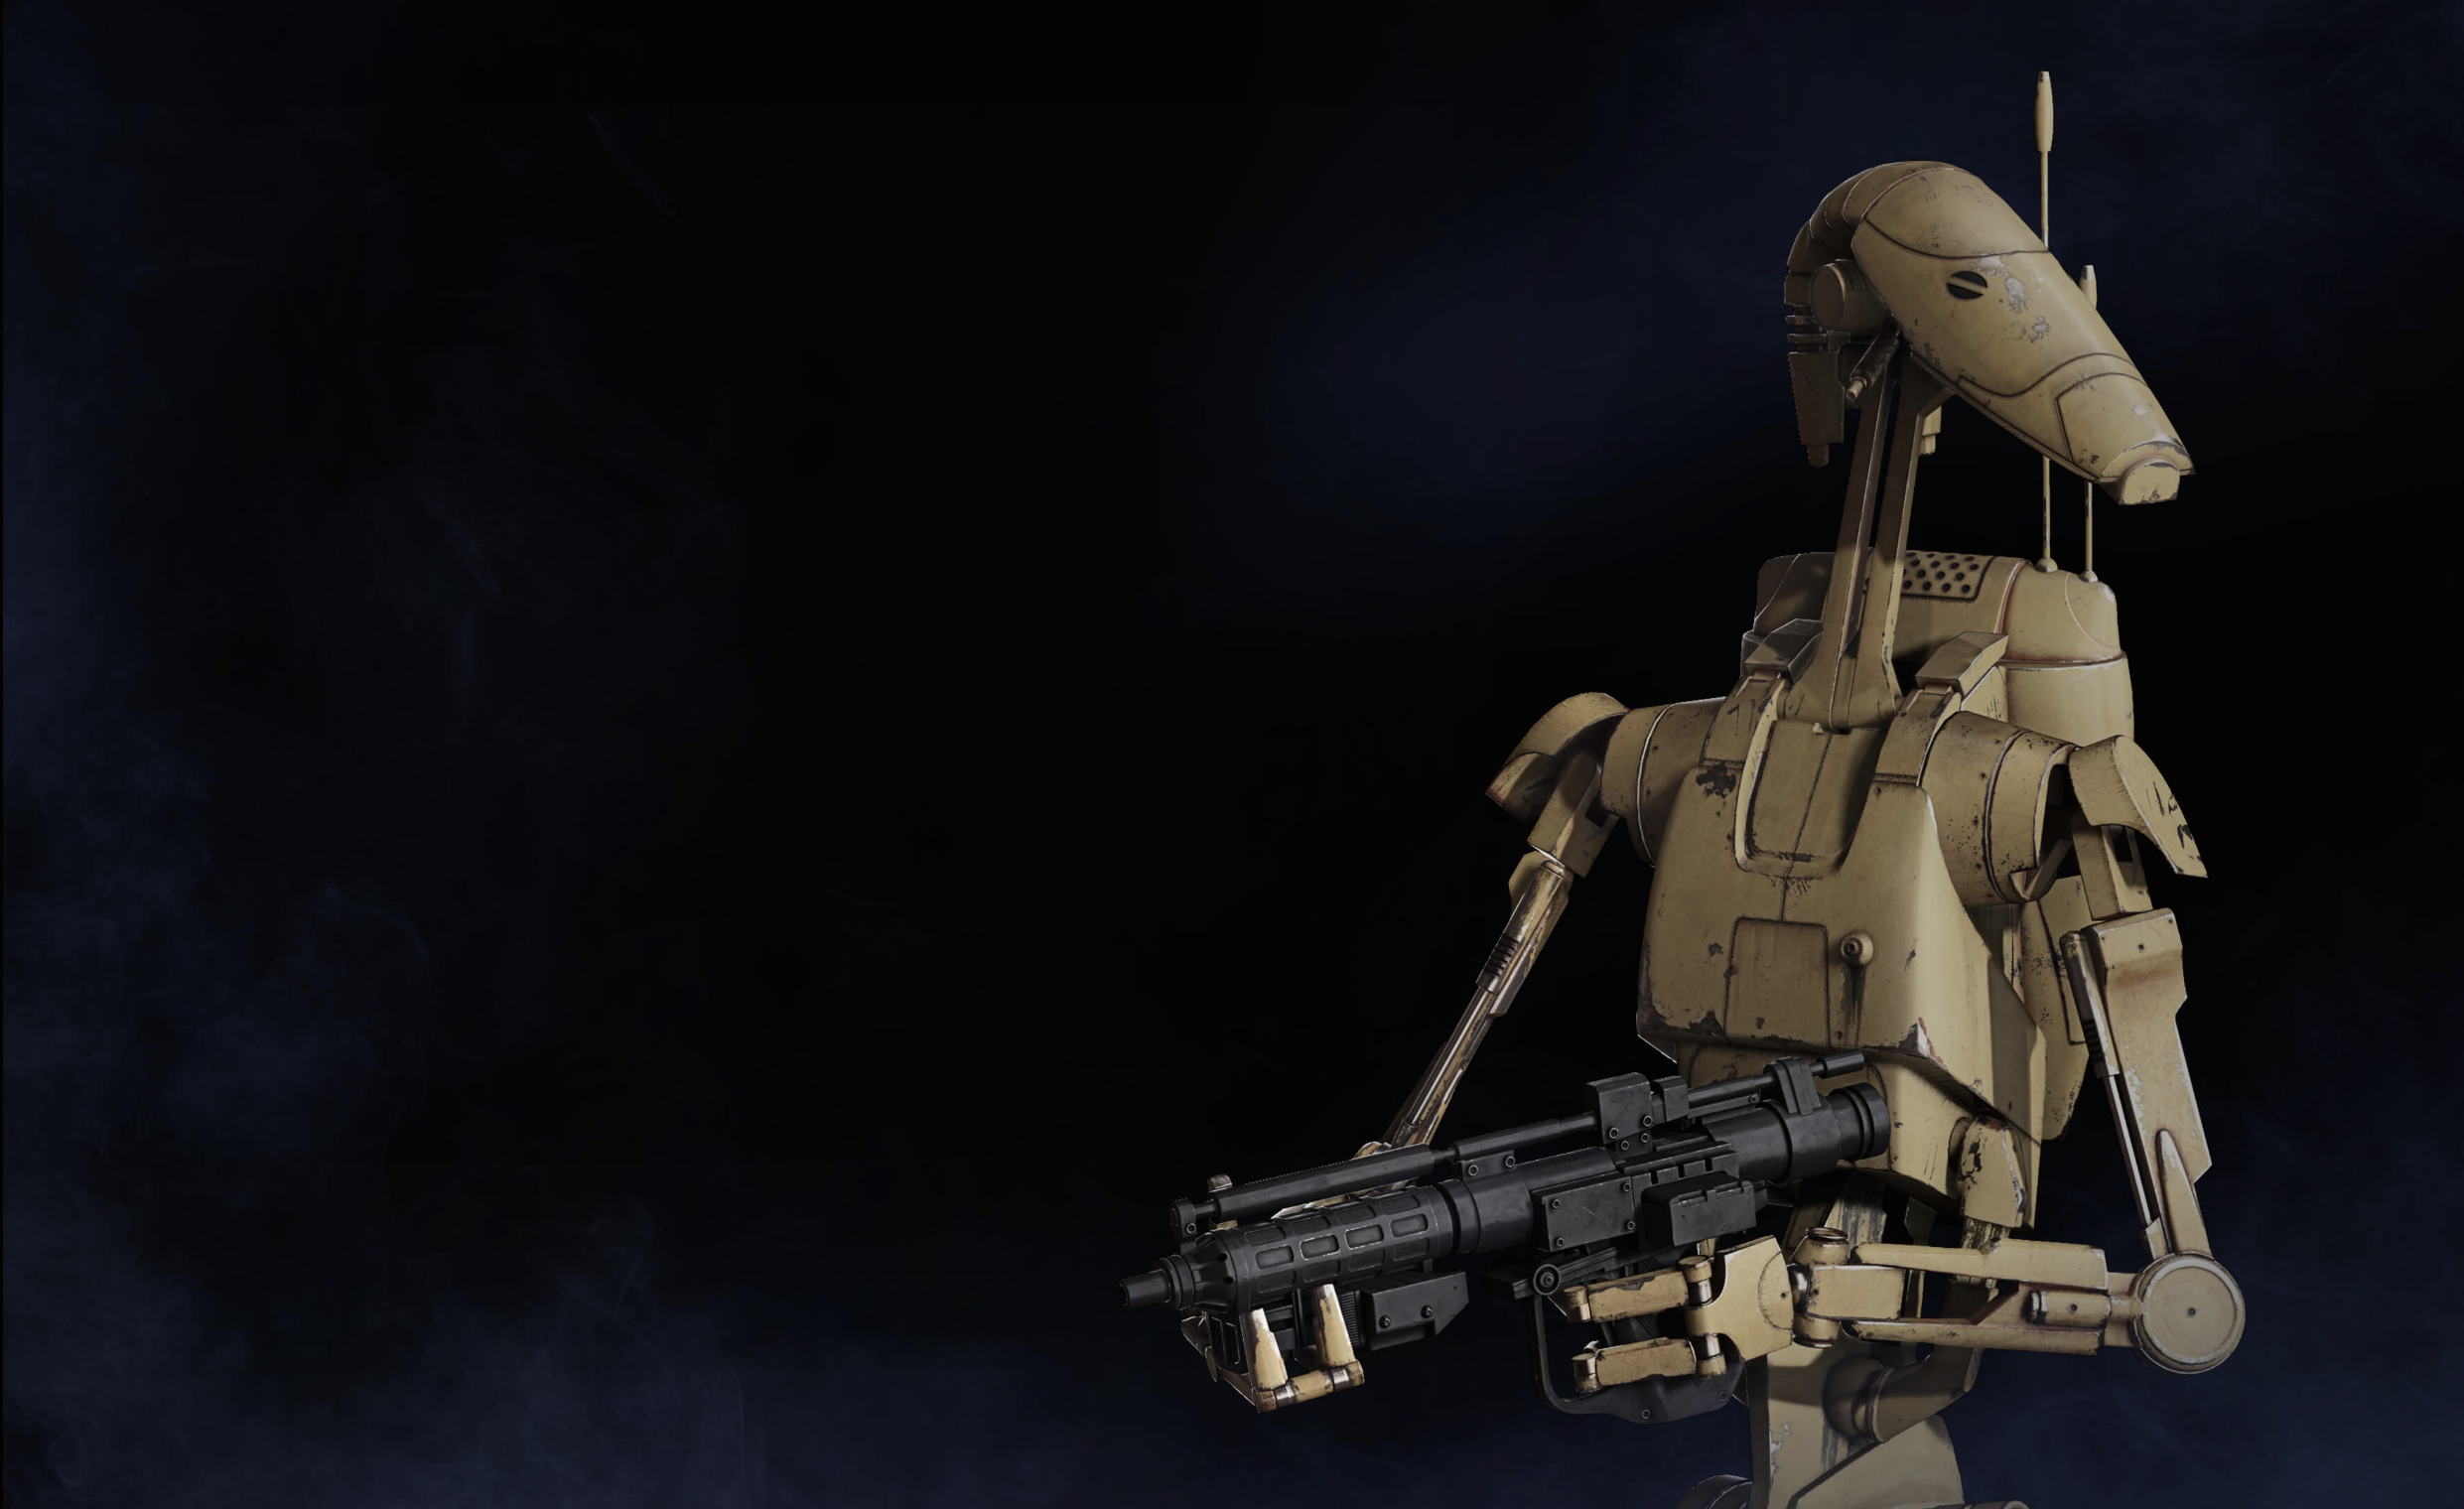 9 battle droid hd wallpapers | backgrounds - wallpaper abyss